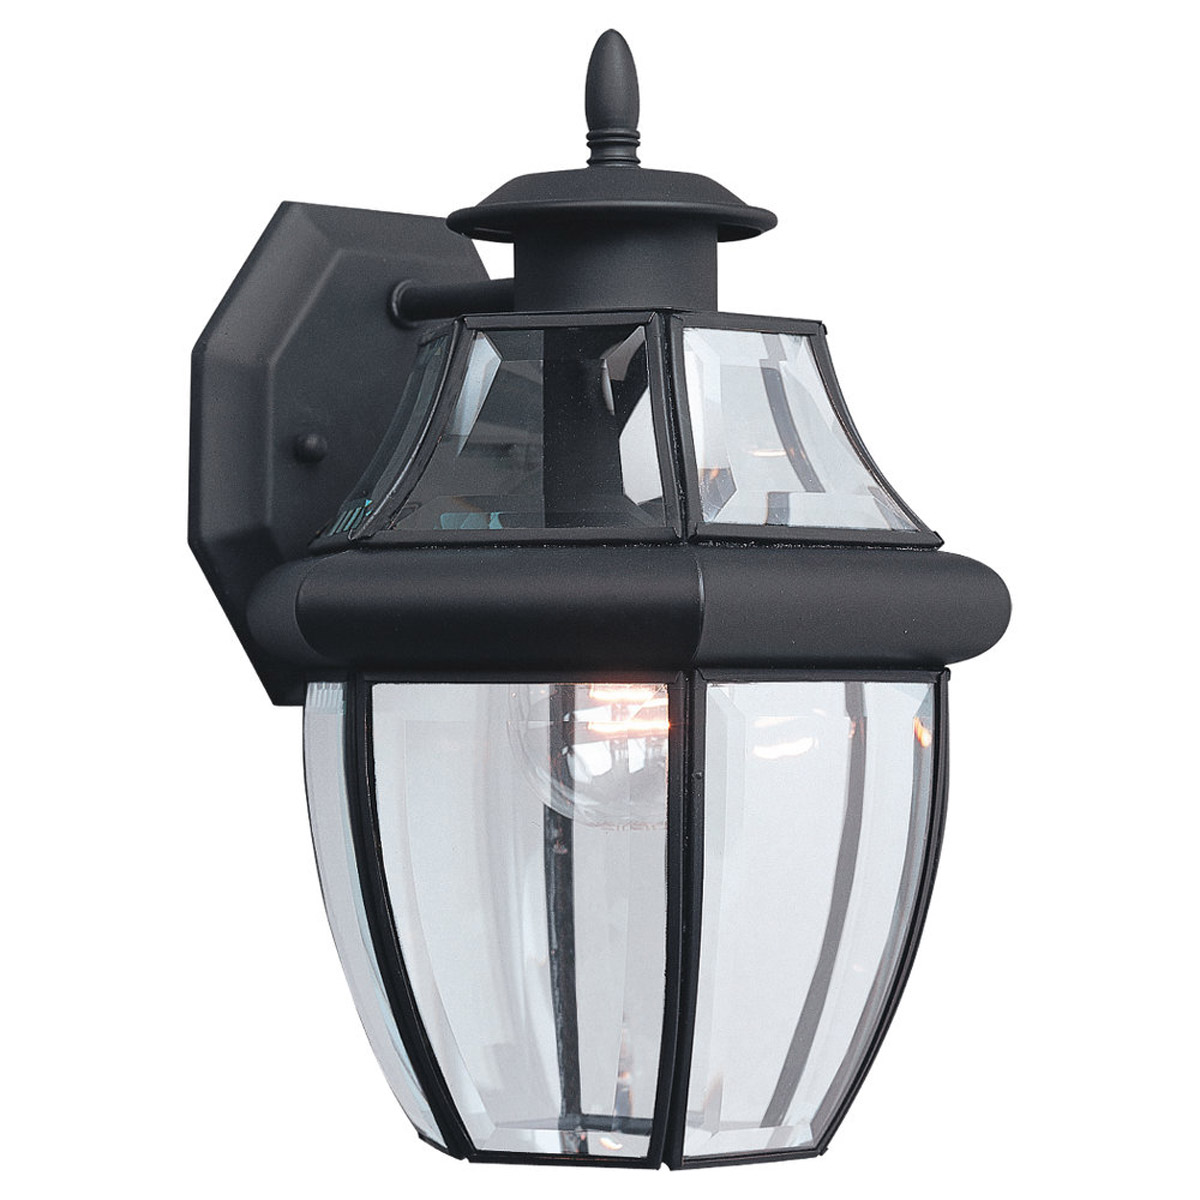 Sea Gull Lighting Lancaster 1 Light Outdoor Wall Lantern in Black 8038-12 photo